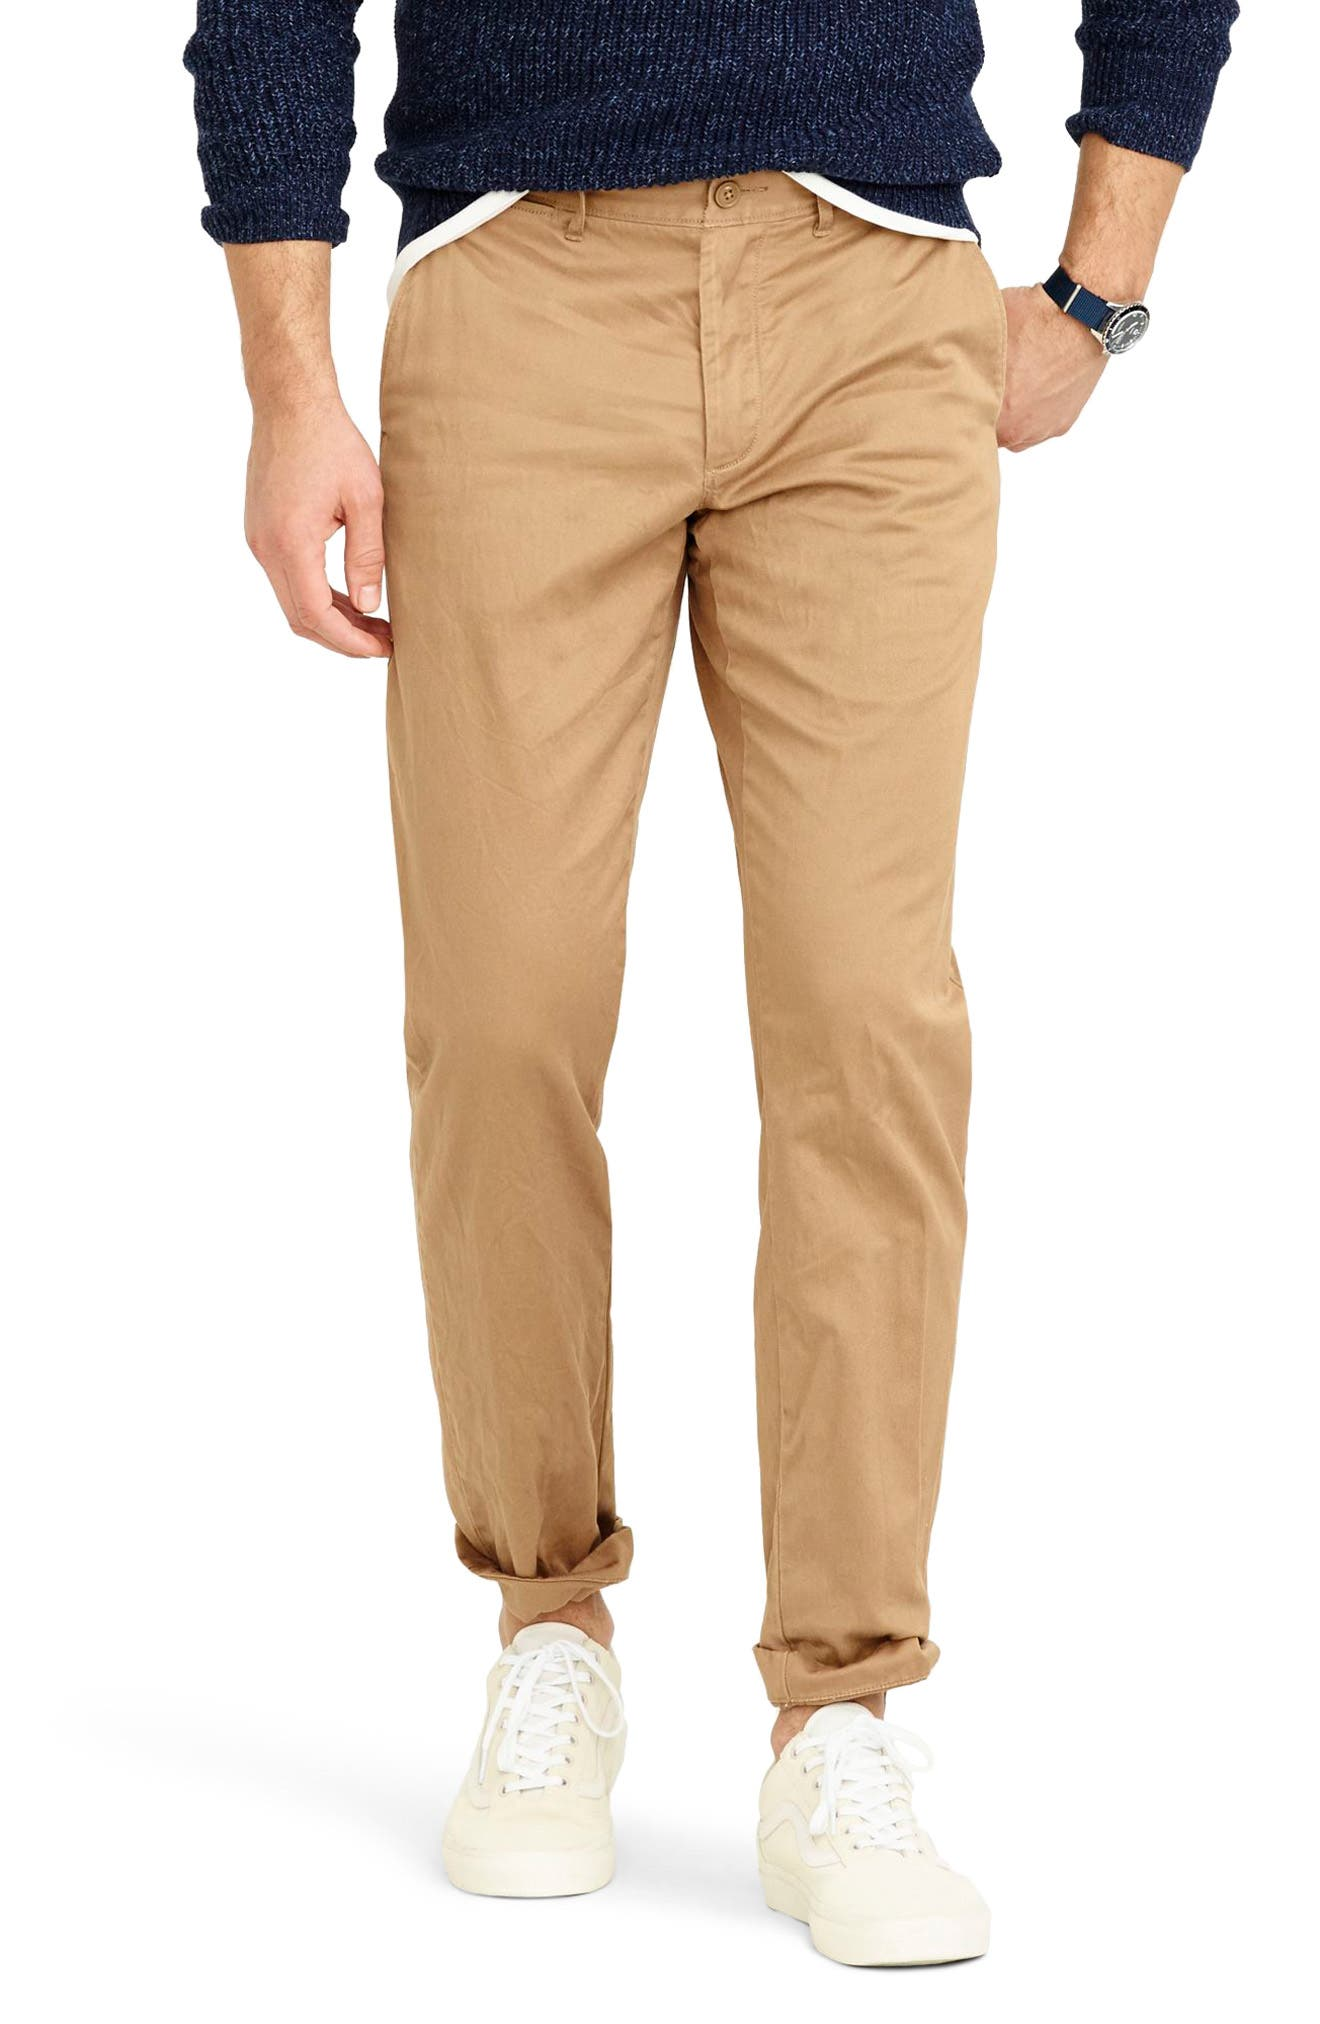 484 Slim Fit Stretch Chino Pants,                             Main thumbnail 6, color,